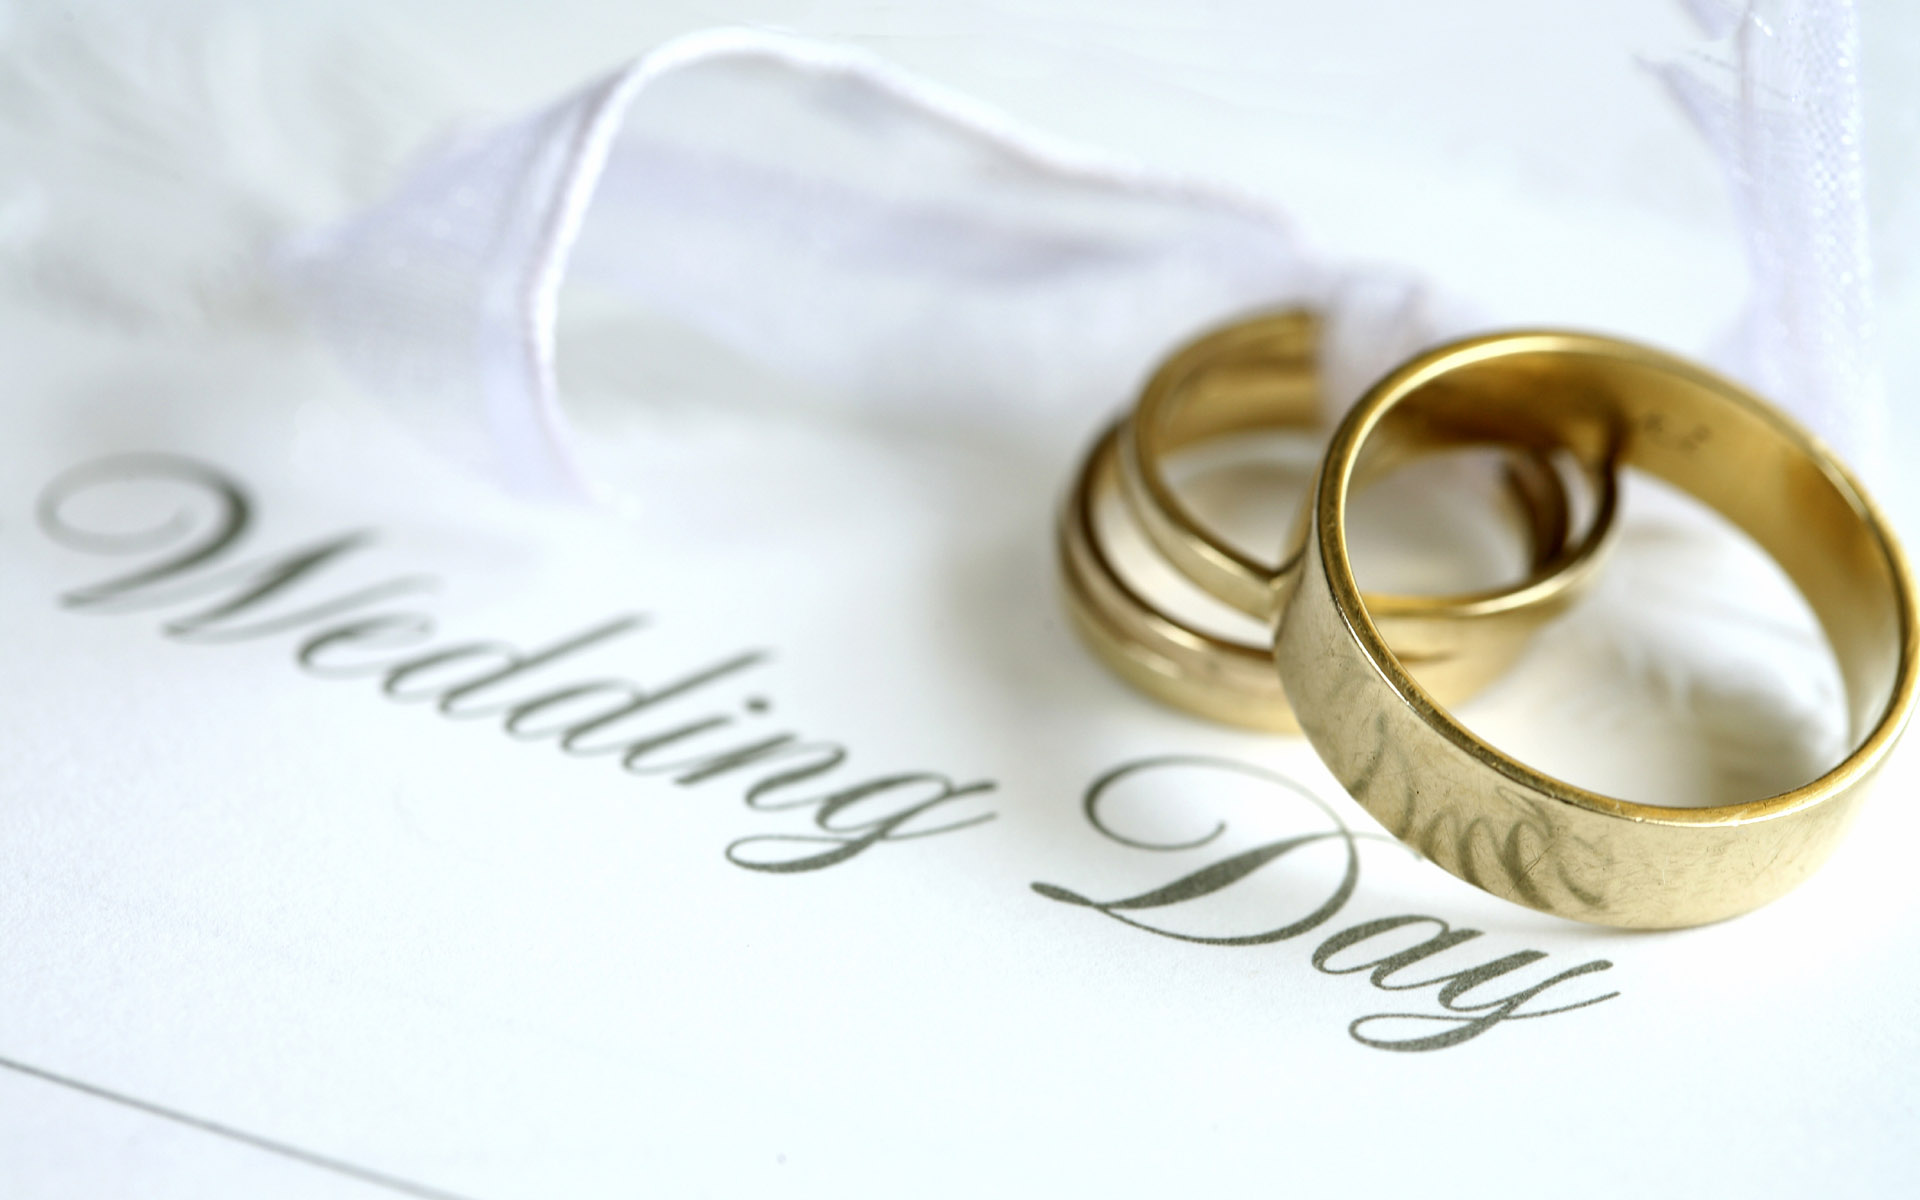 Arizona Court Orders Christian Store Owners to Make Wedding Invitations for Homosexual Couples